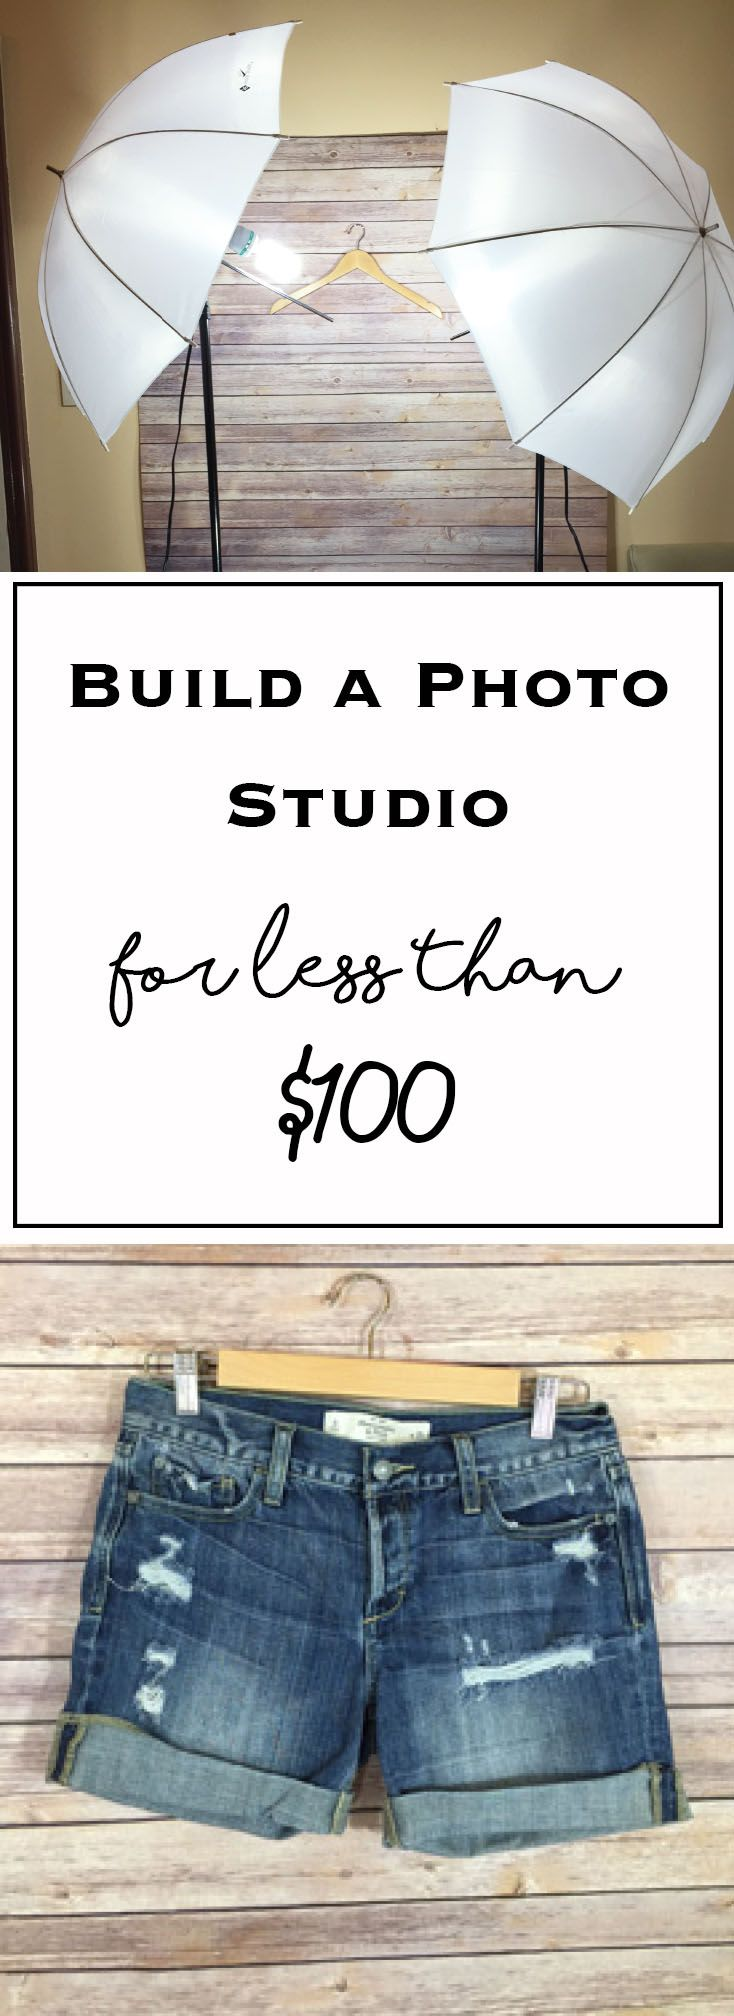 How to Build a Photo Studio for Less Than $100